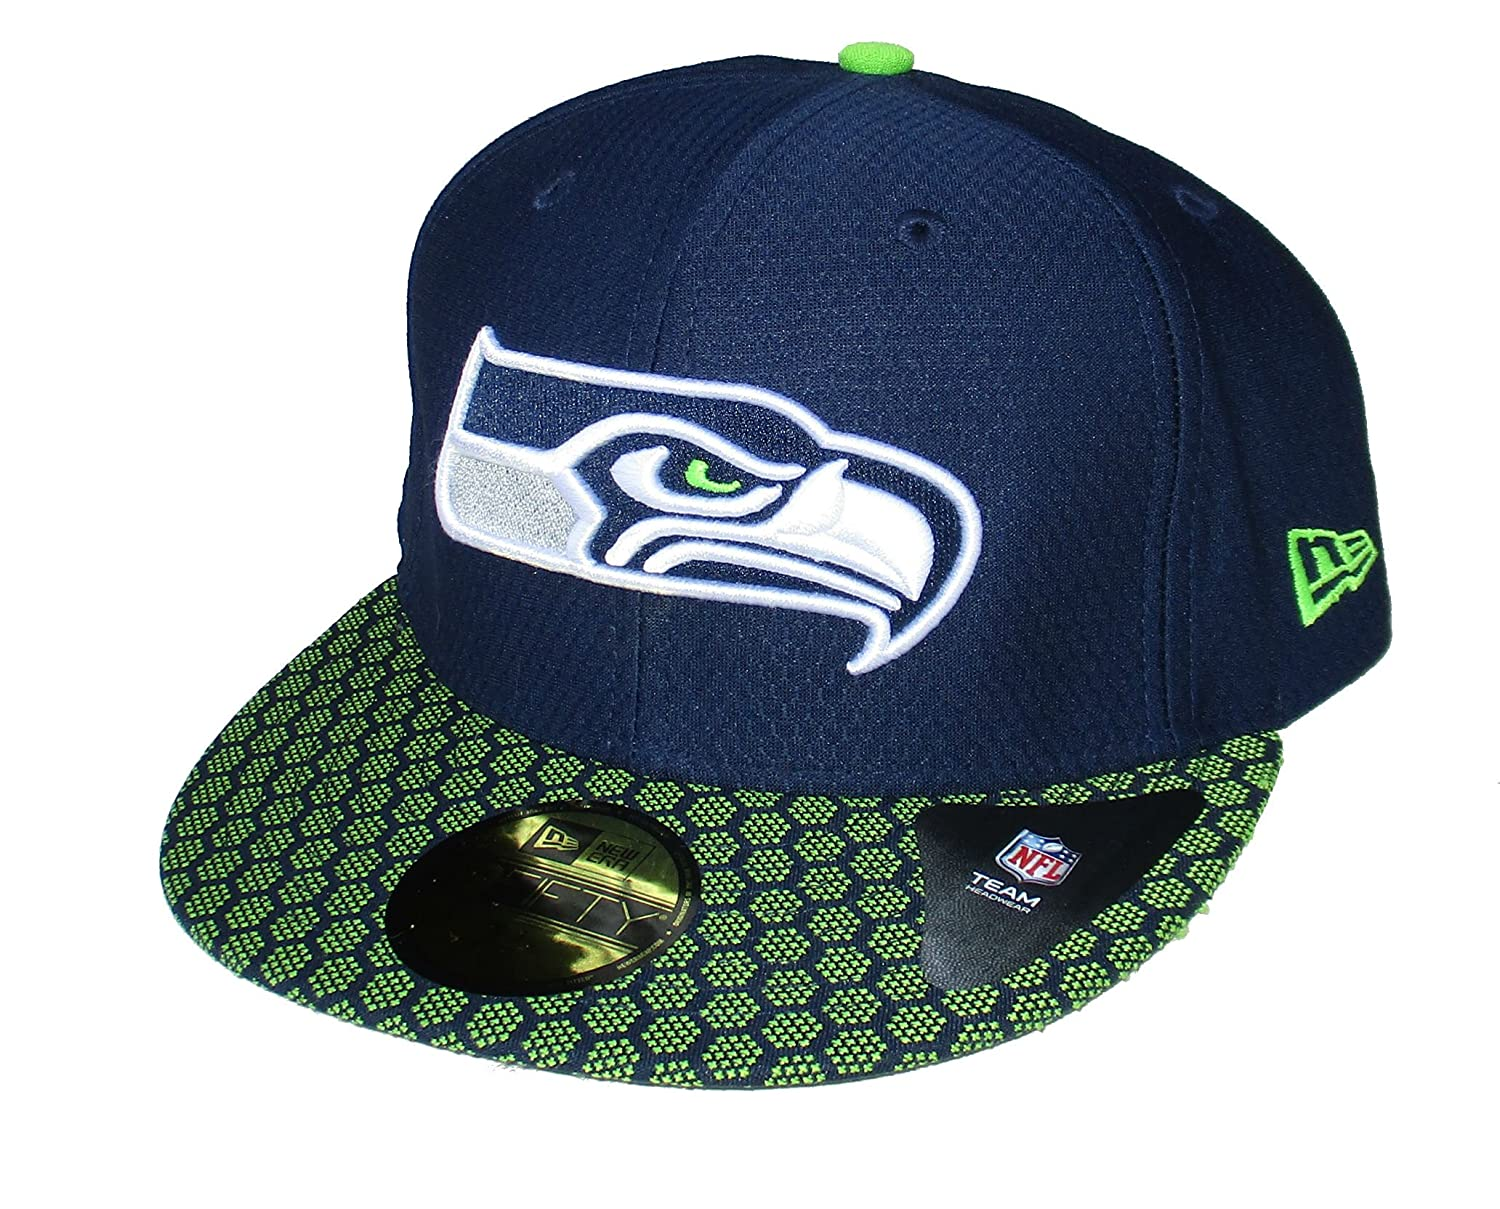 huge discount 4bc6c 04fe7 Amazon.com   Seattle Seahawks New Era Fitted Size 7 1 2 Hat Cap - Team  Colors   Sports   Outdoors